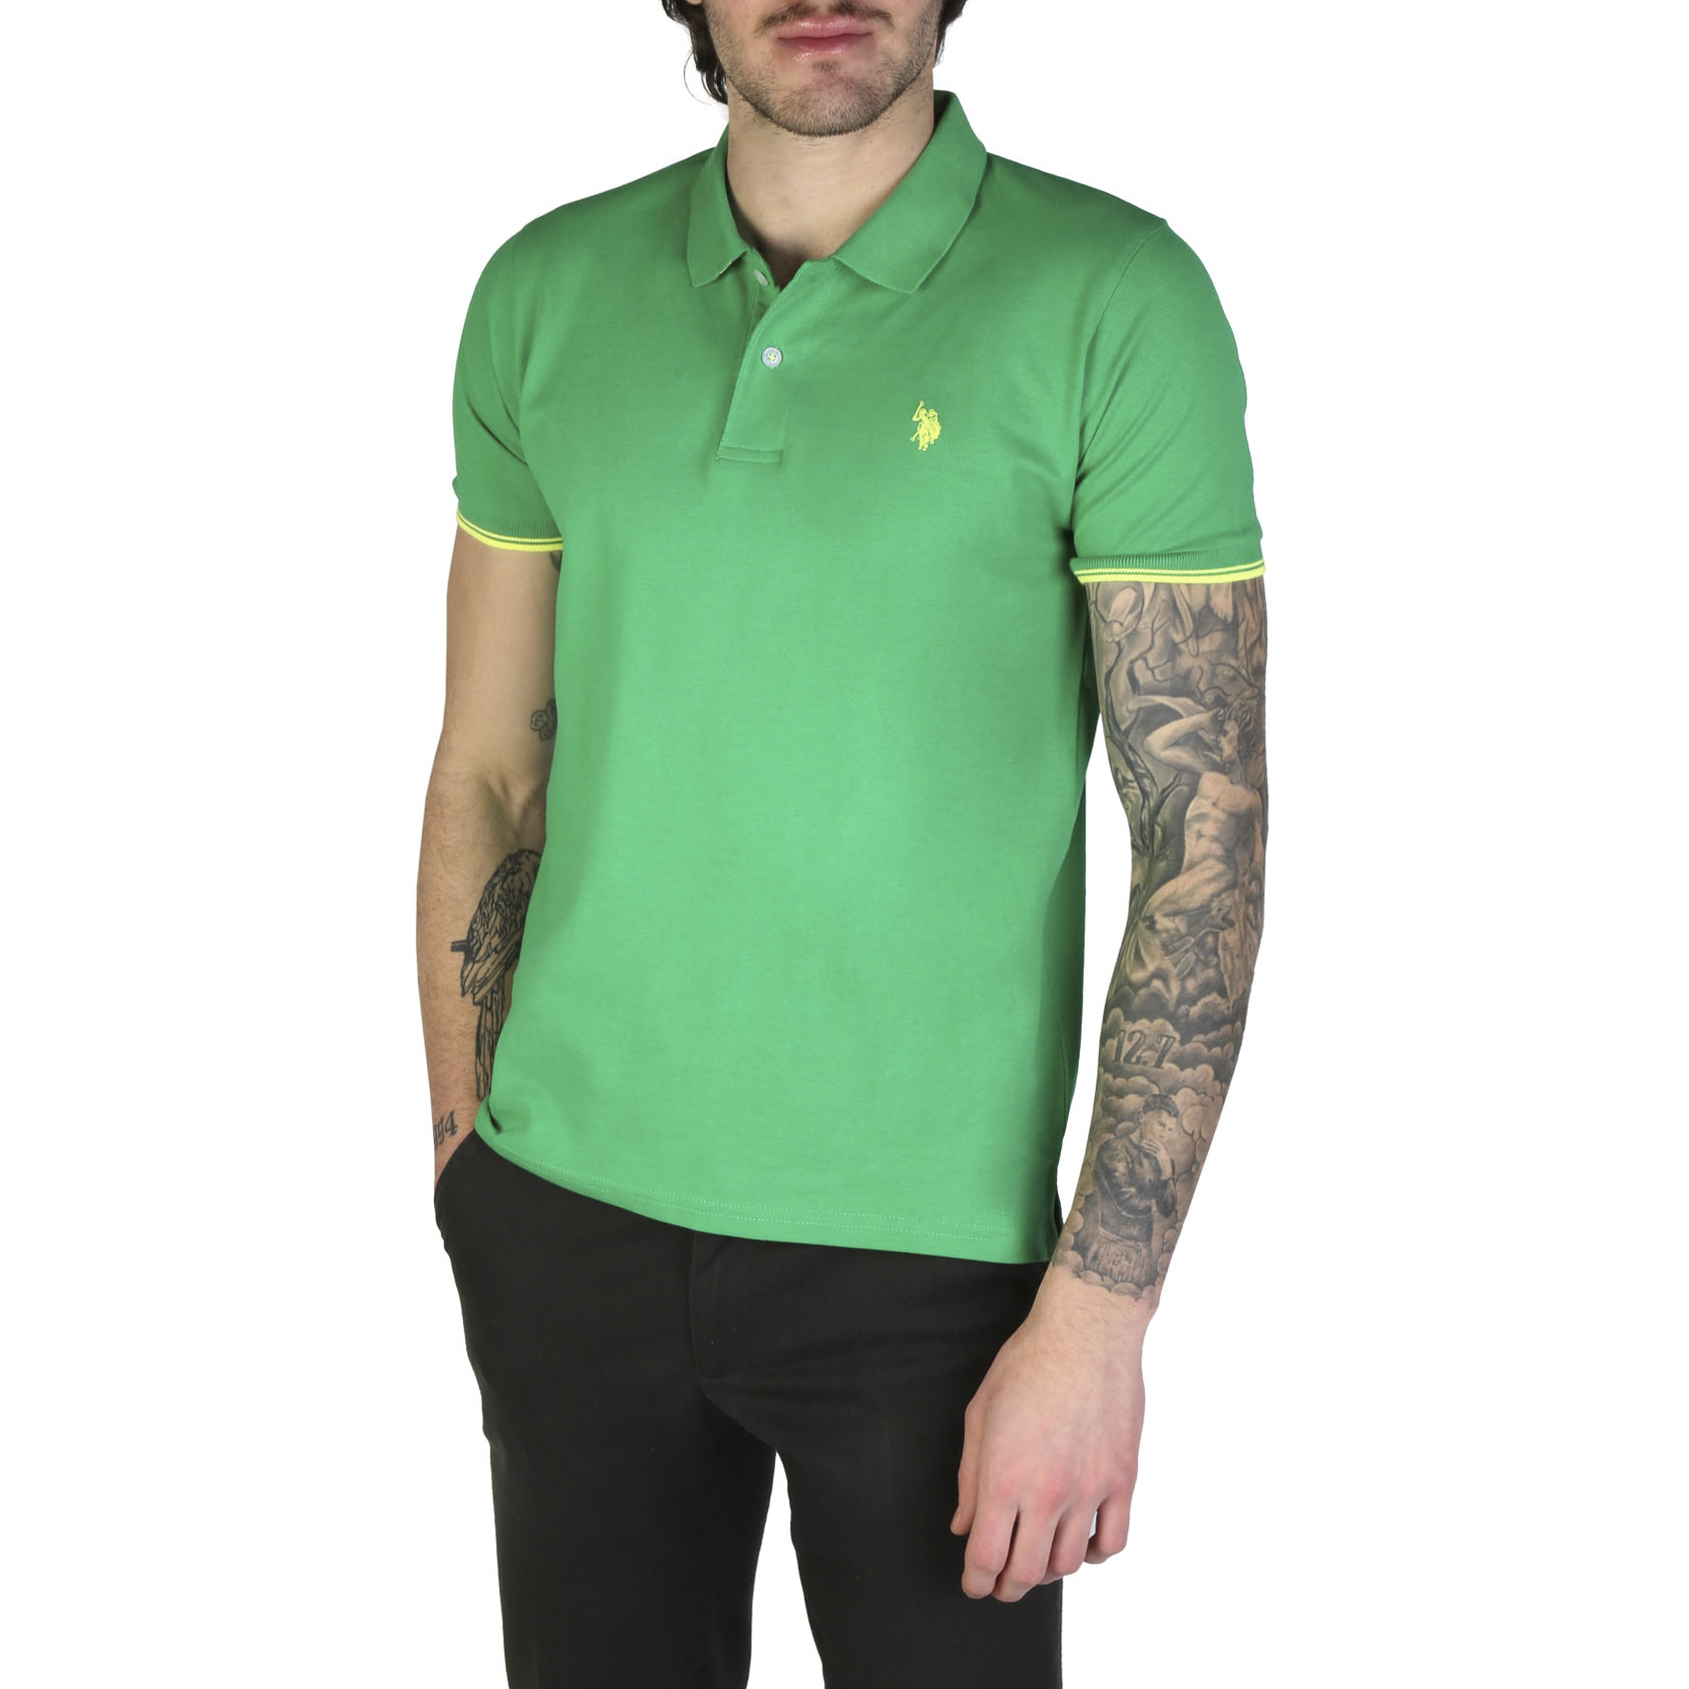 Chemises manches courtes  U.S. Polo 52432_41029 green